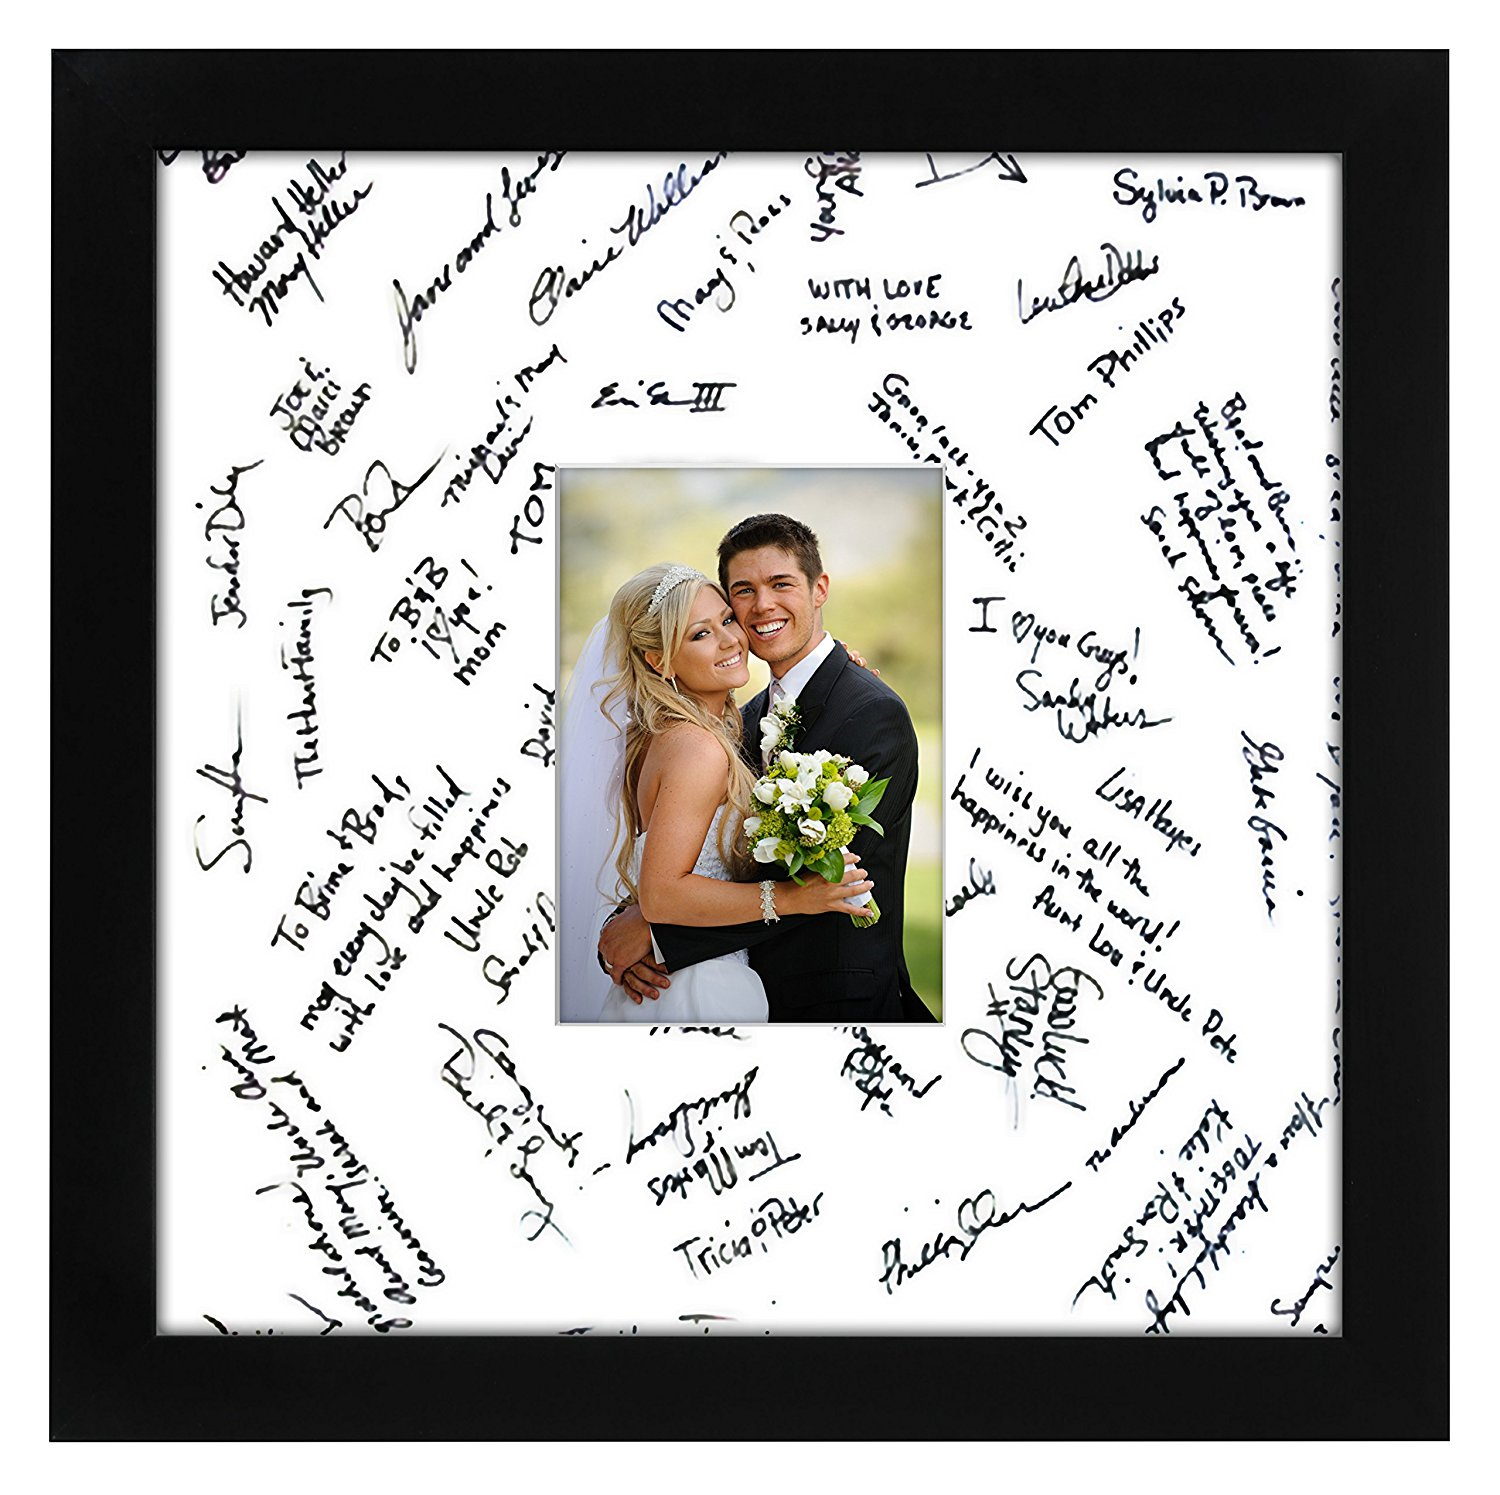 14x14 Black Wedding Picture Frame Matted to Fit Pictures 5x7 Inches or 14x14 Without Mat... by Americanflat